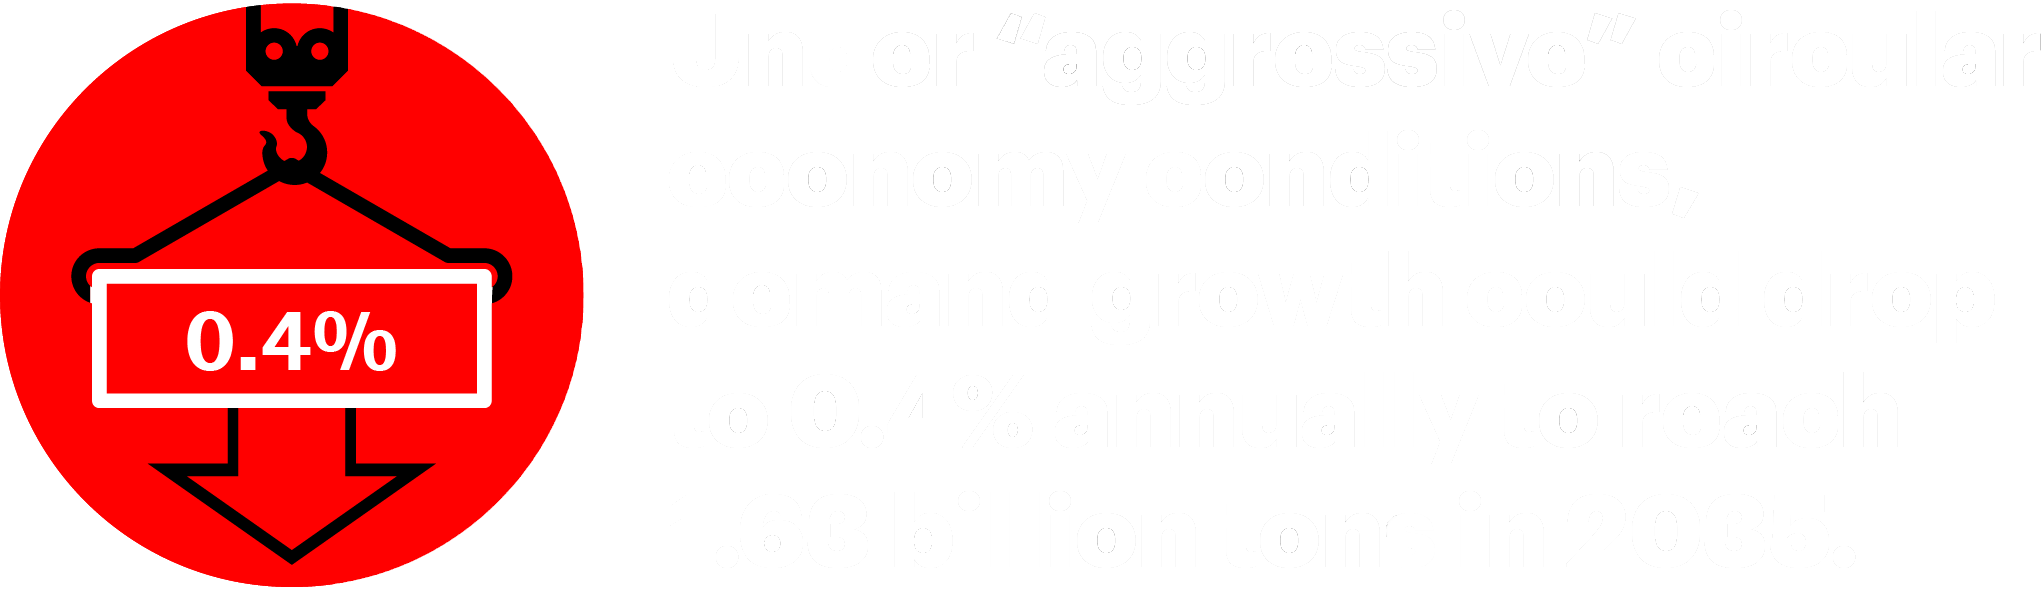 "Under ""aggressive"" circular economy conditions, demand growth could drop to 0.4% annually to reach 1.63 billion tons in 2035."